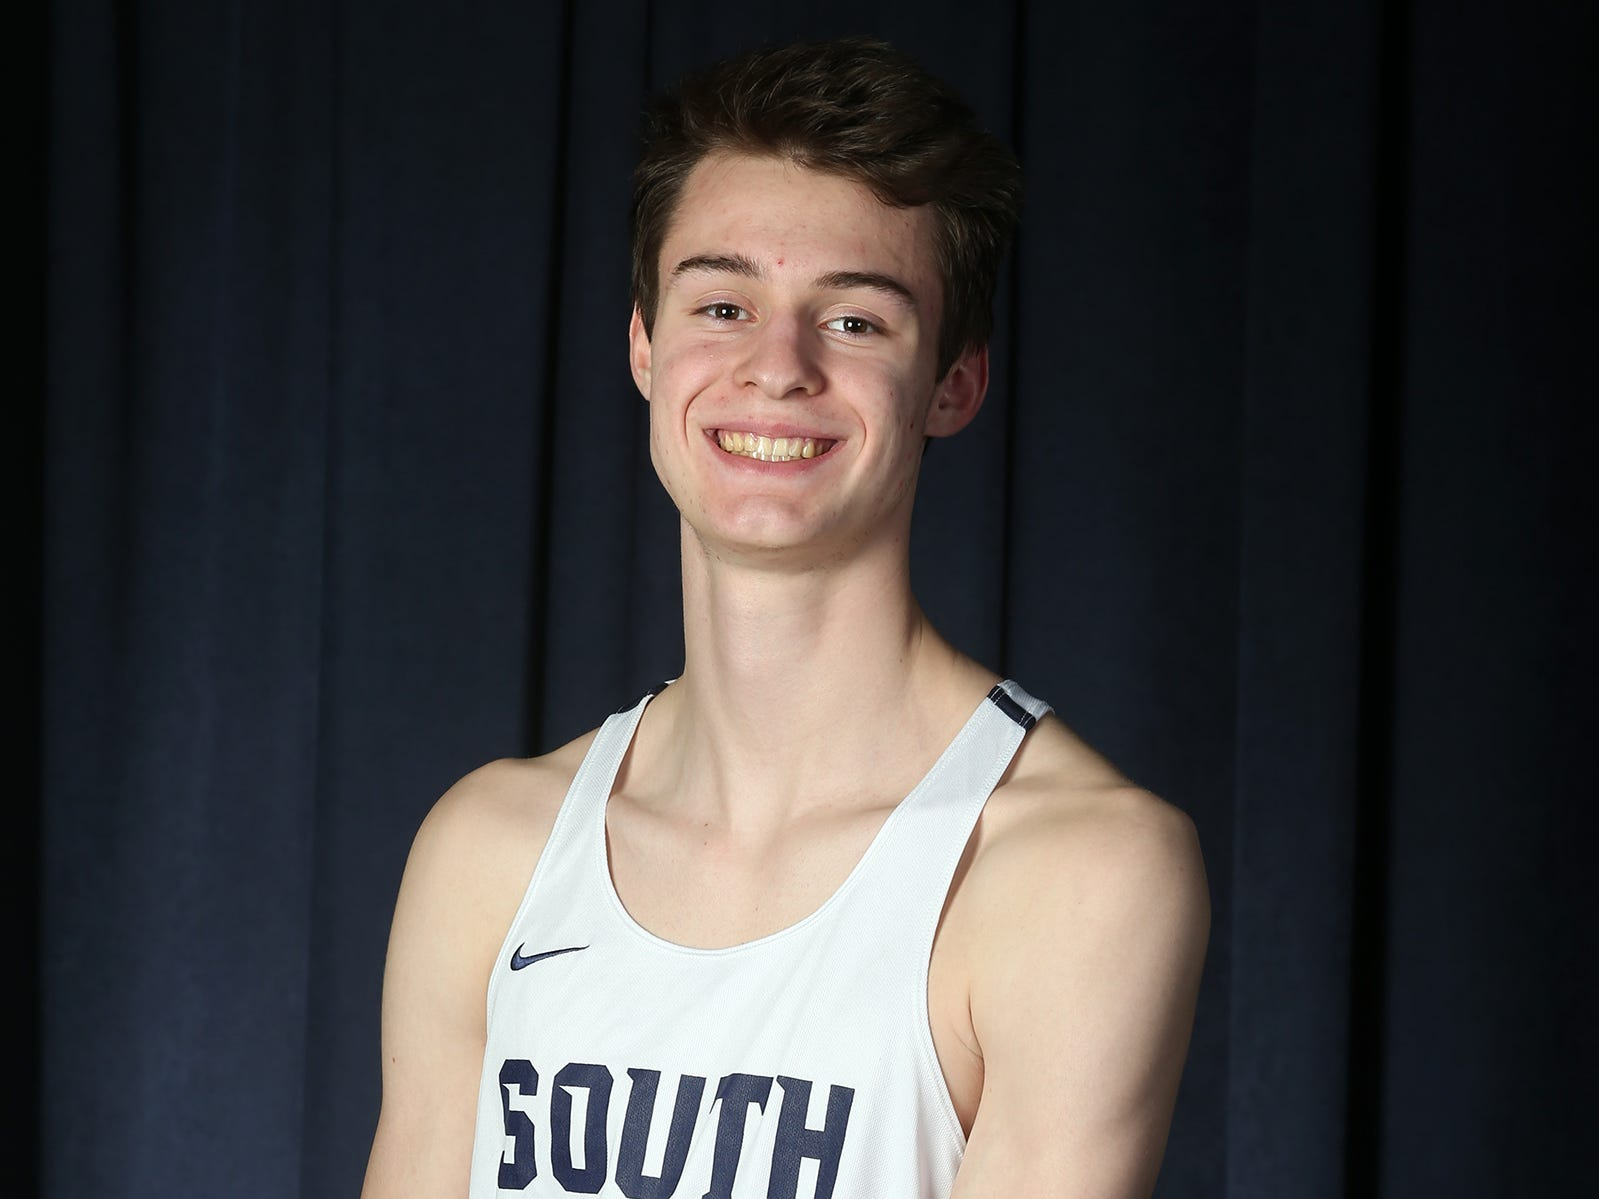 Mark Anselmi of Middletown South during the All-Shore boys track team photo shoot at the Asbury Park Press in Neptune, NJ Thursday, March 14, 2019.